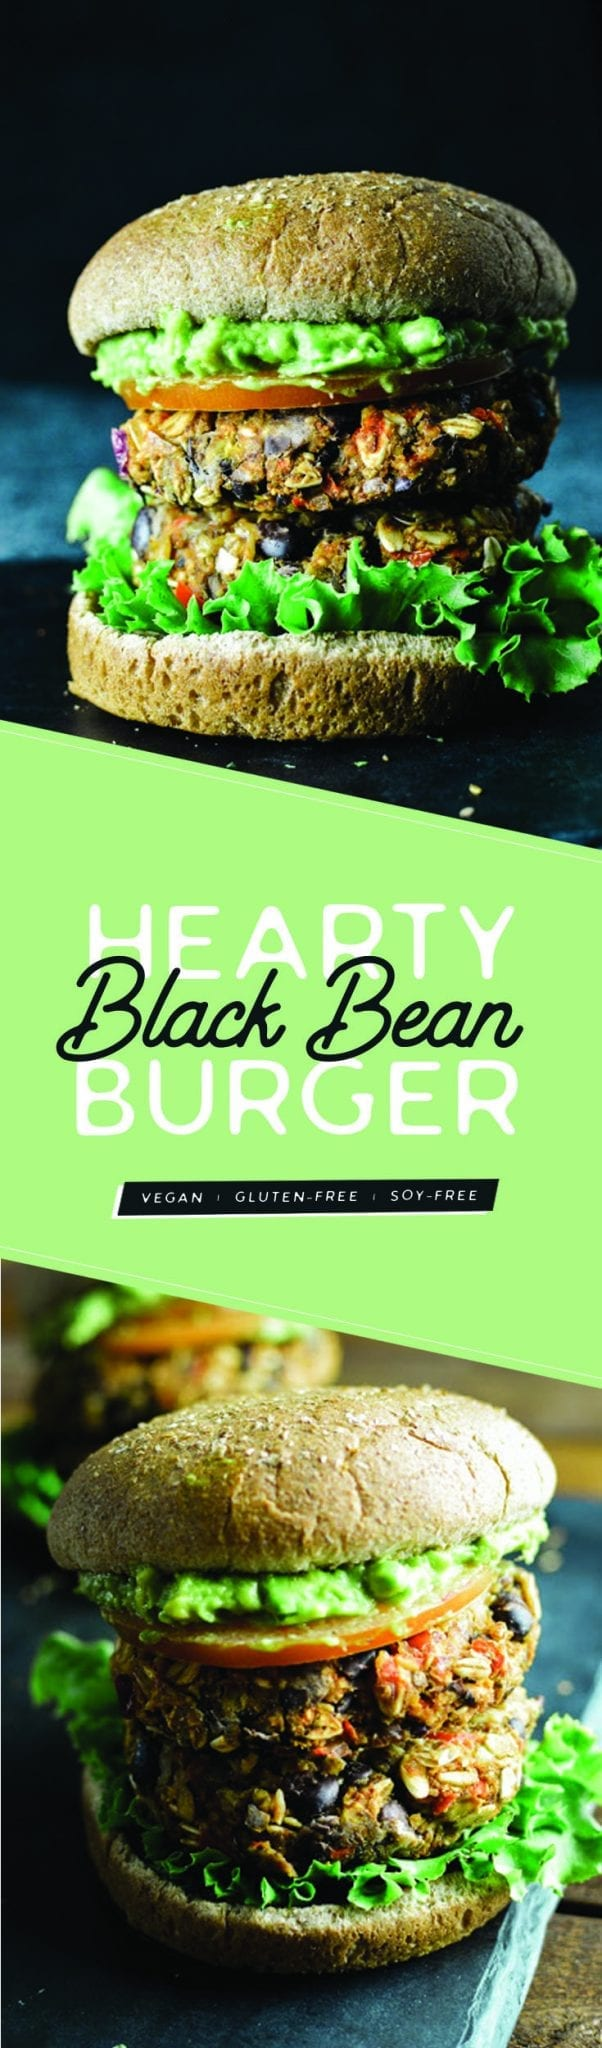 Hearty Vegan Black Bean Burger | Gluten-Free | Soy-Free